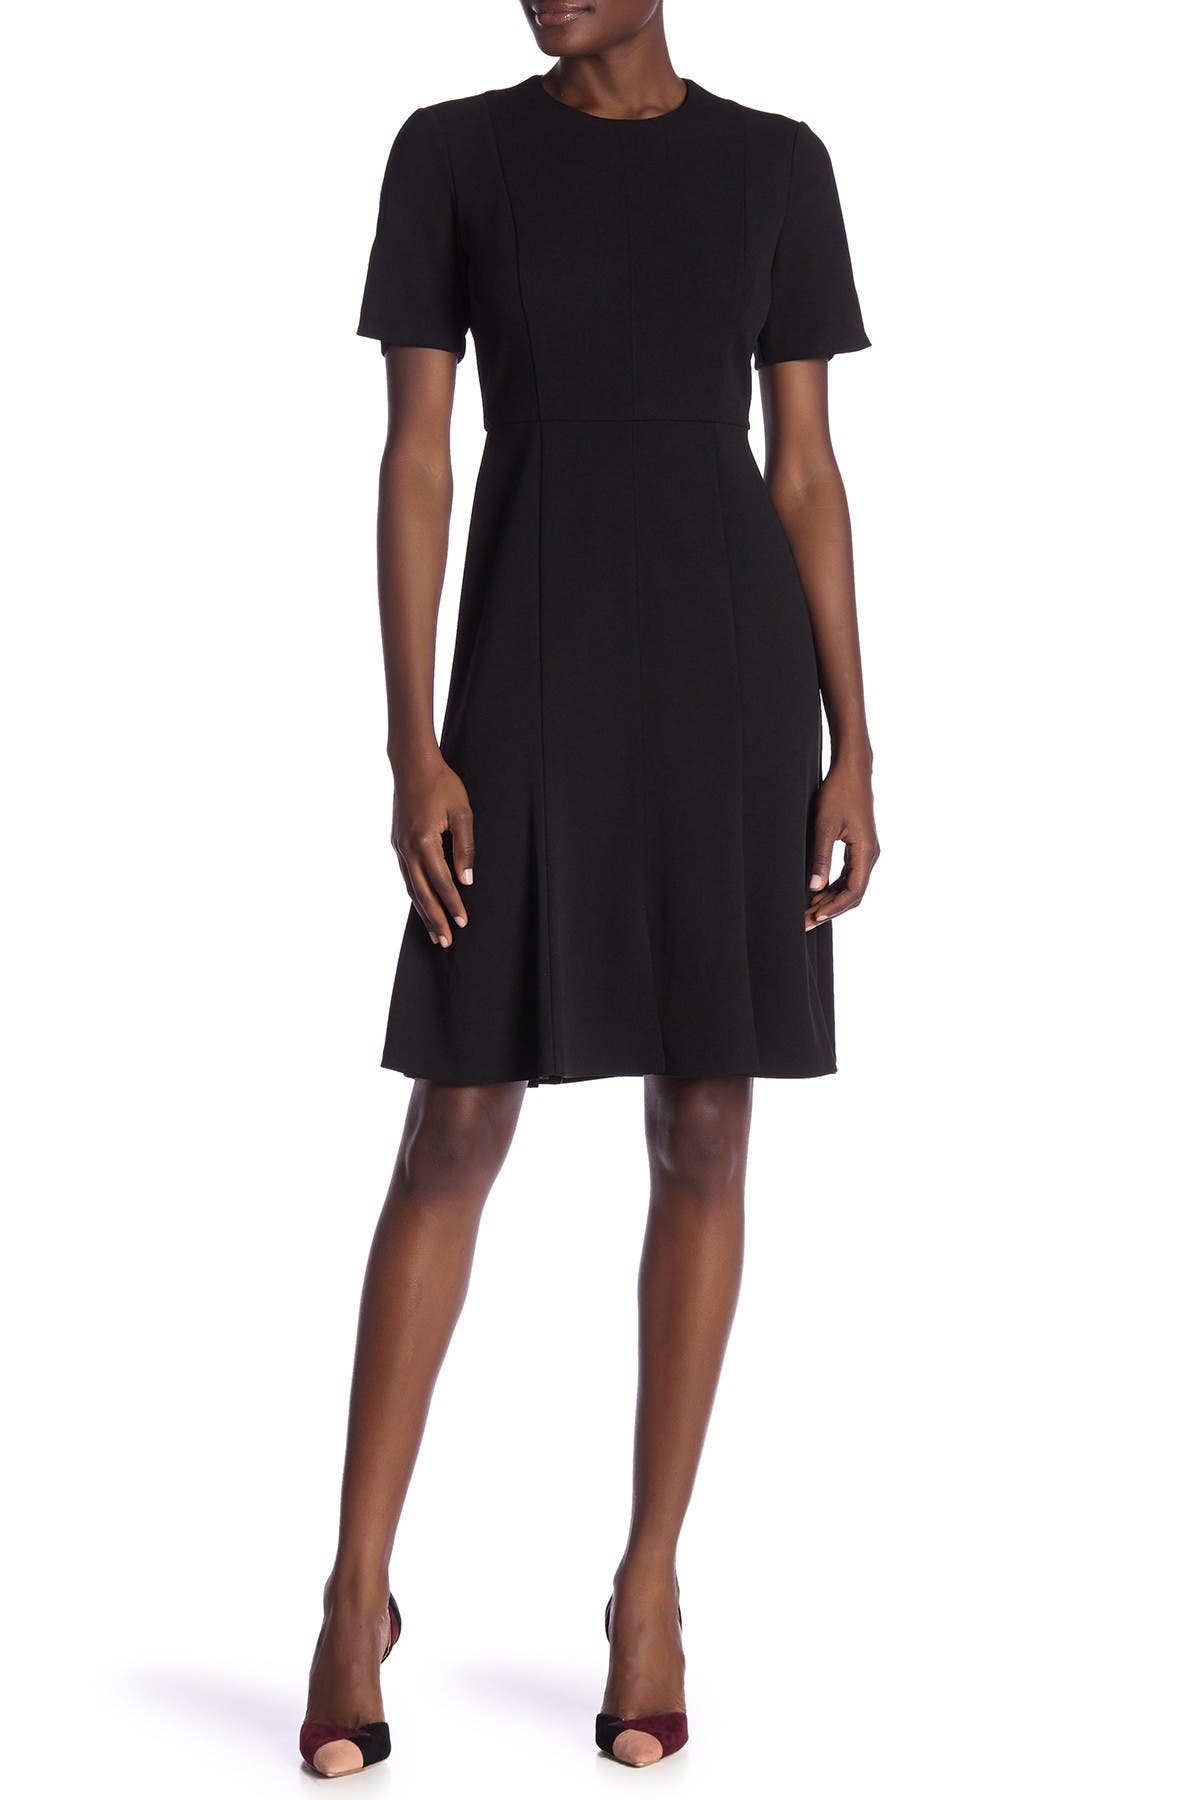 Image of Donna Morgan Short Sleeve Crepe Fit & Flare Dress